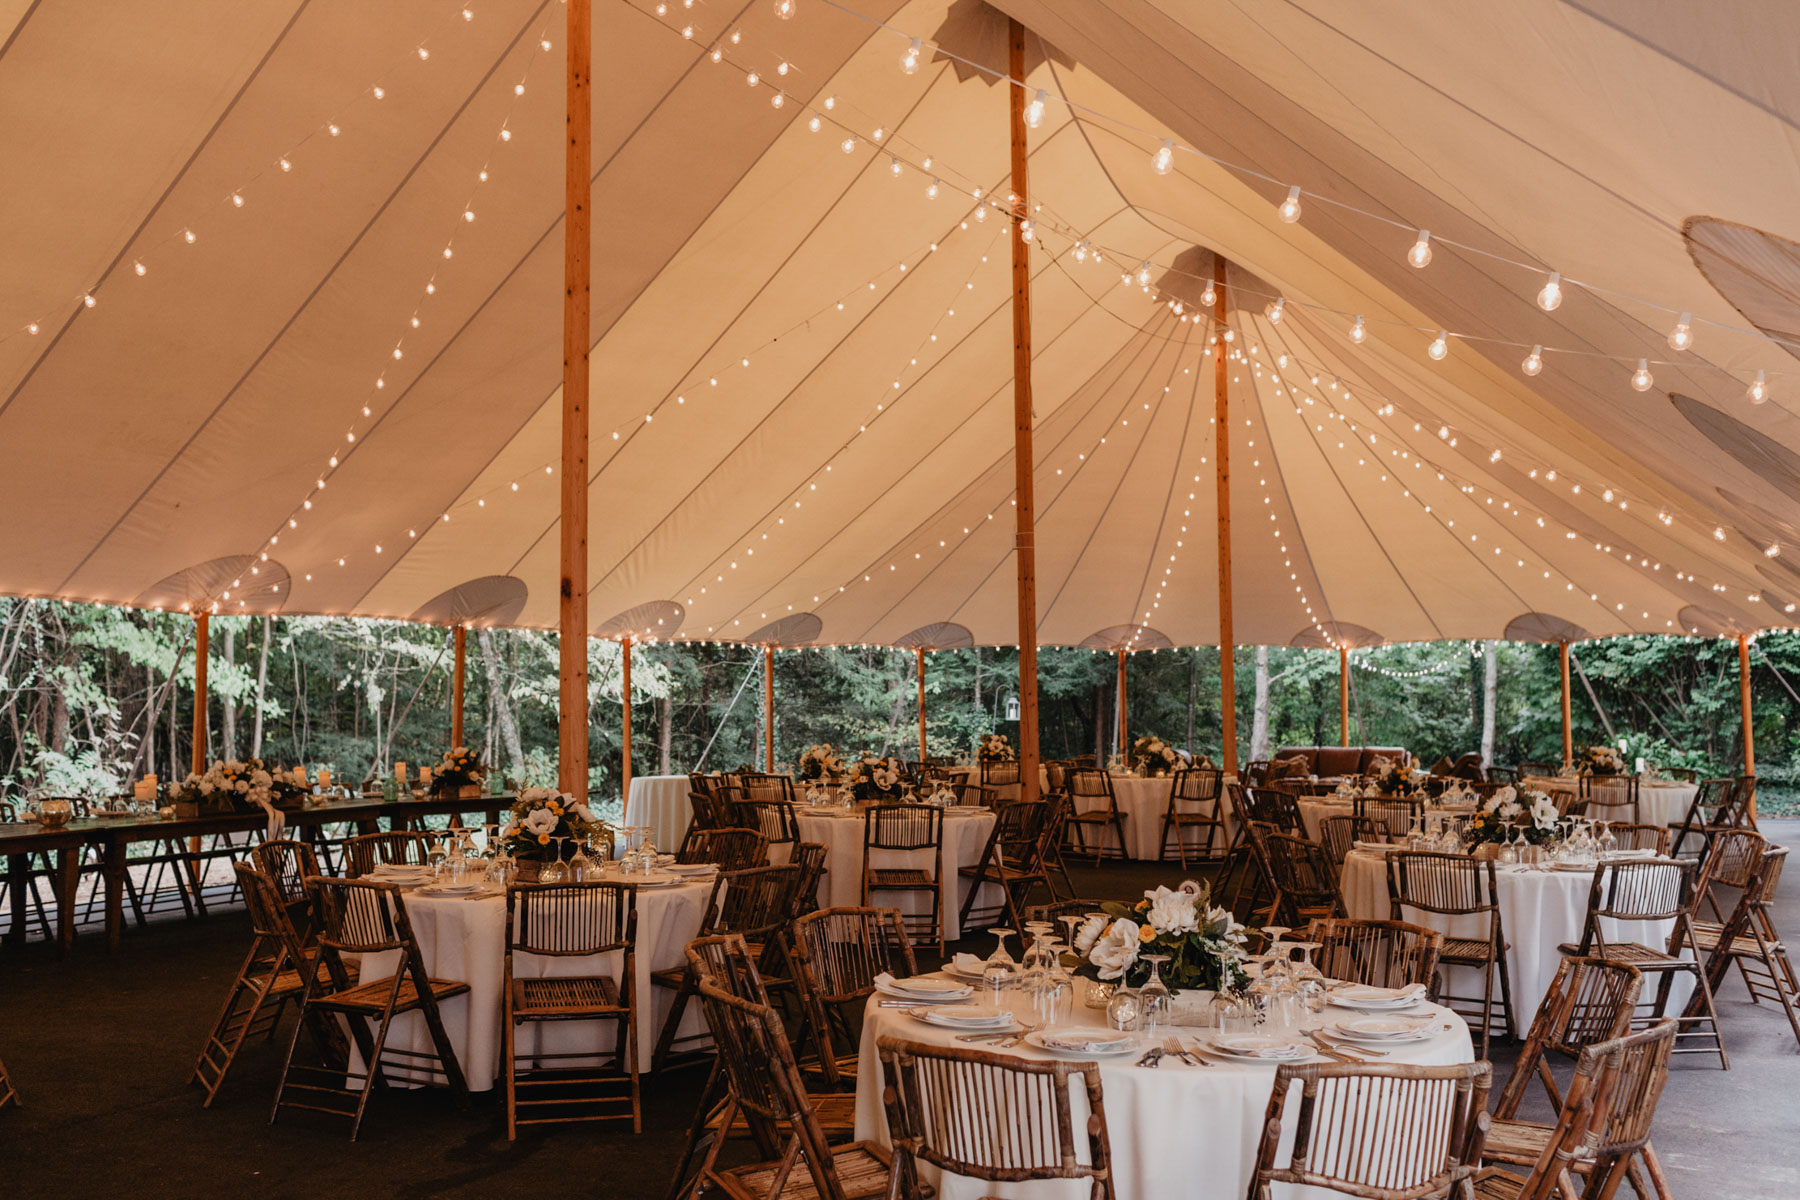 Wedding Venues in Knoxville TN | RT Lodge